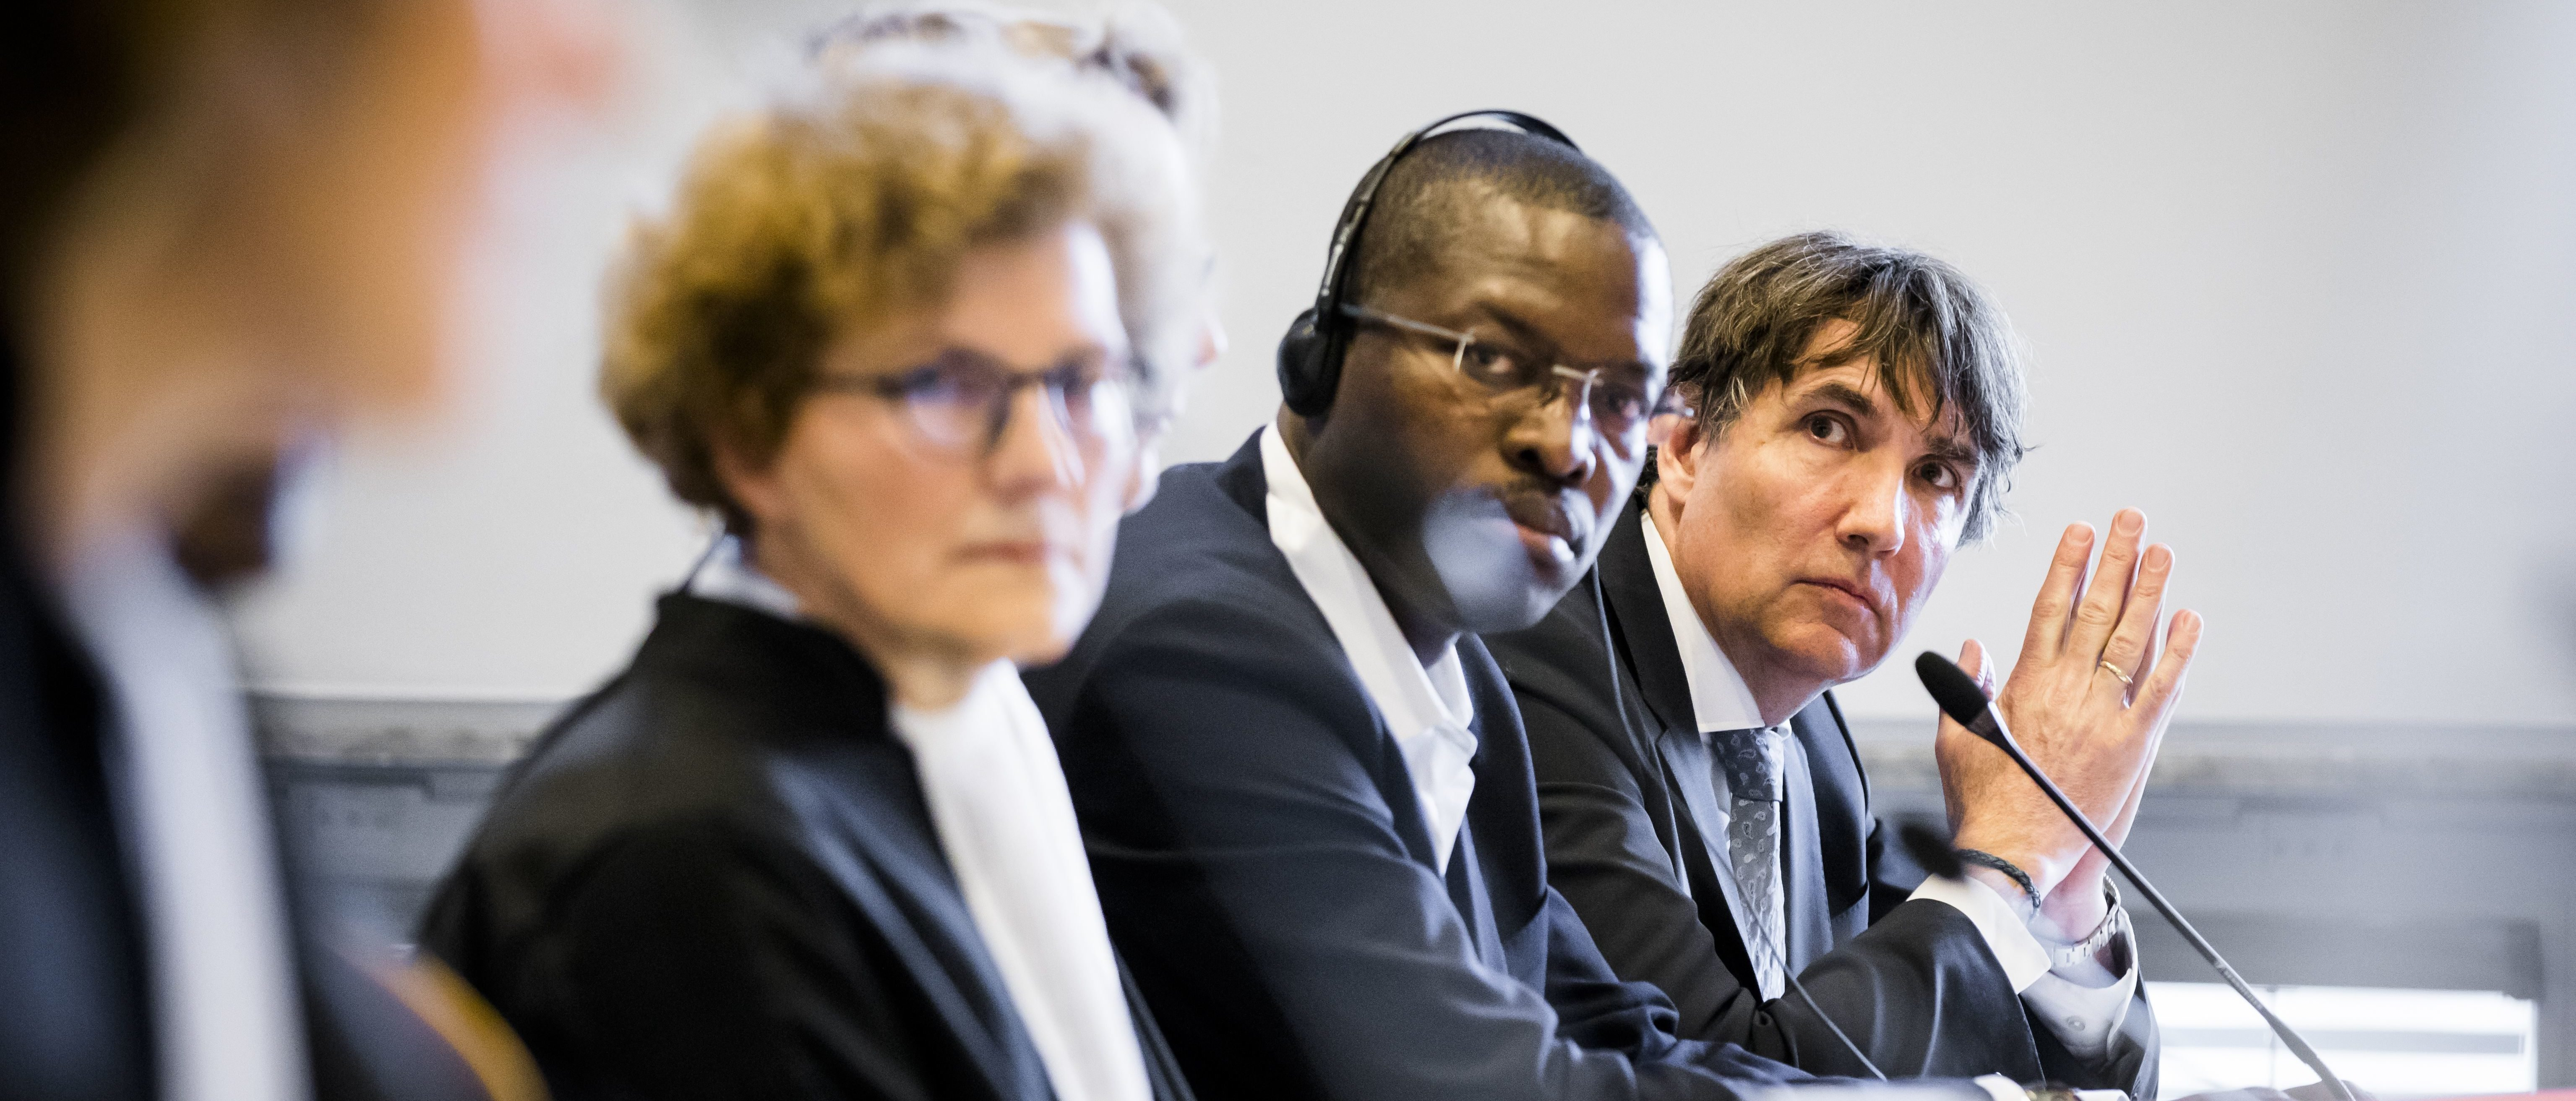 (L-R) The lawyers of Shell, Mette van Asperen, Wemmeke Wisman, Igo Wel and Bas Pries attend a civil court case trial against Dutch-British multinational oil company Shell in The Hague courthouse on February 12, 2019. BART MAAT/AFP/Getty Images)